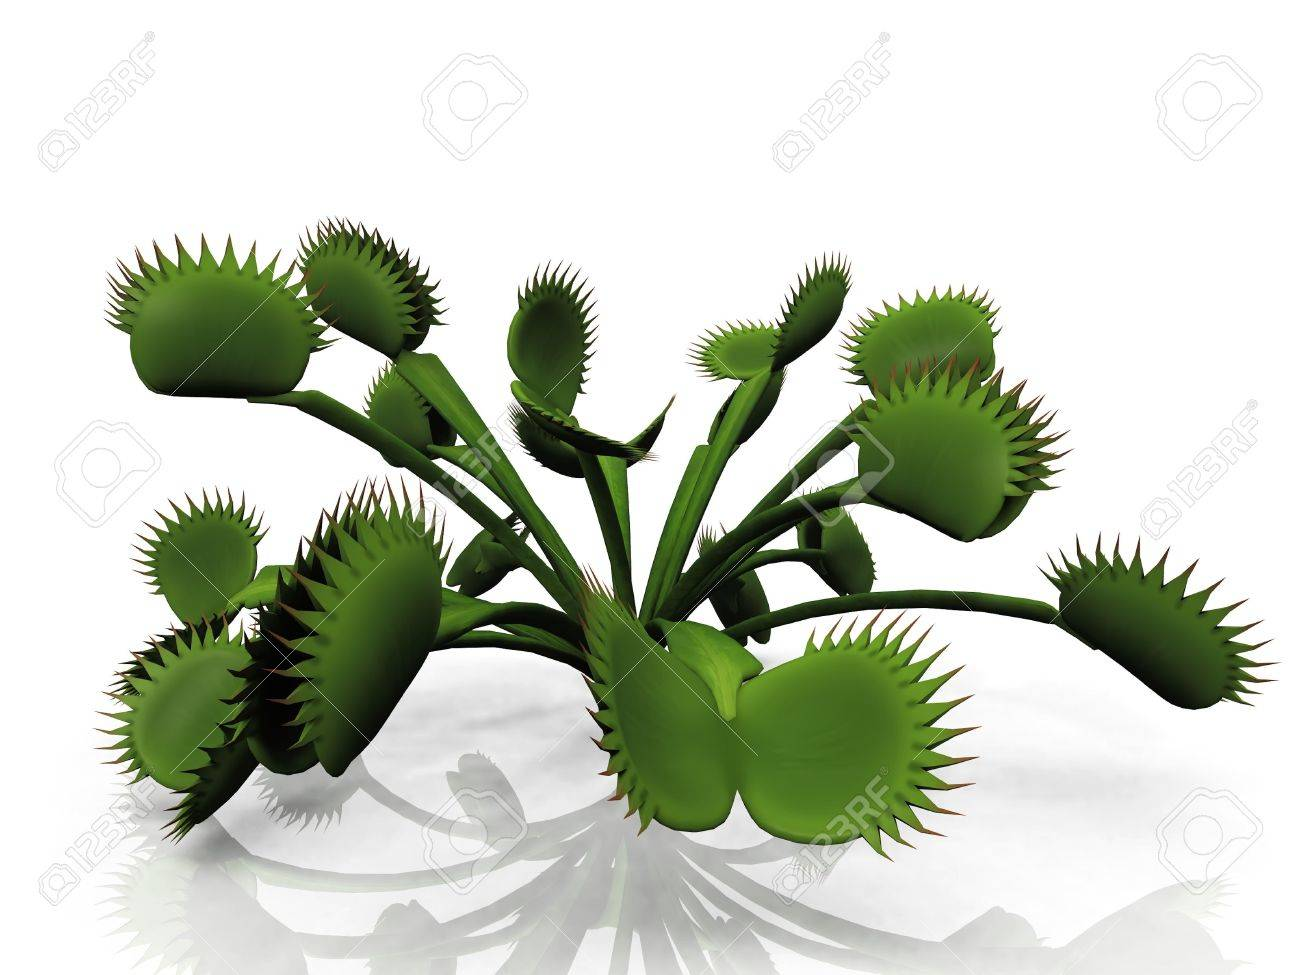 Venus flytrap on a a white background Stock Photo - 10956885